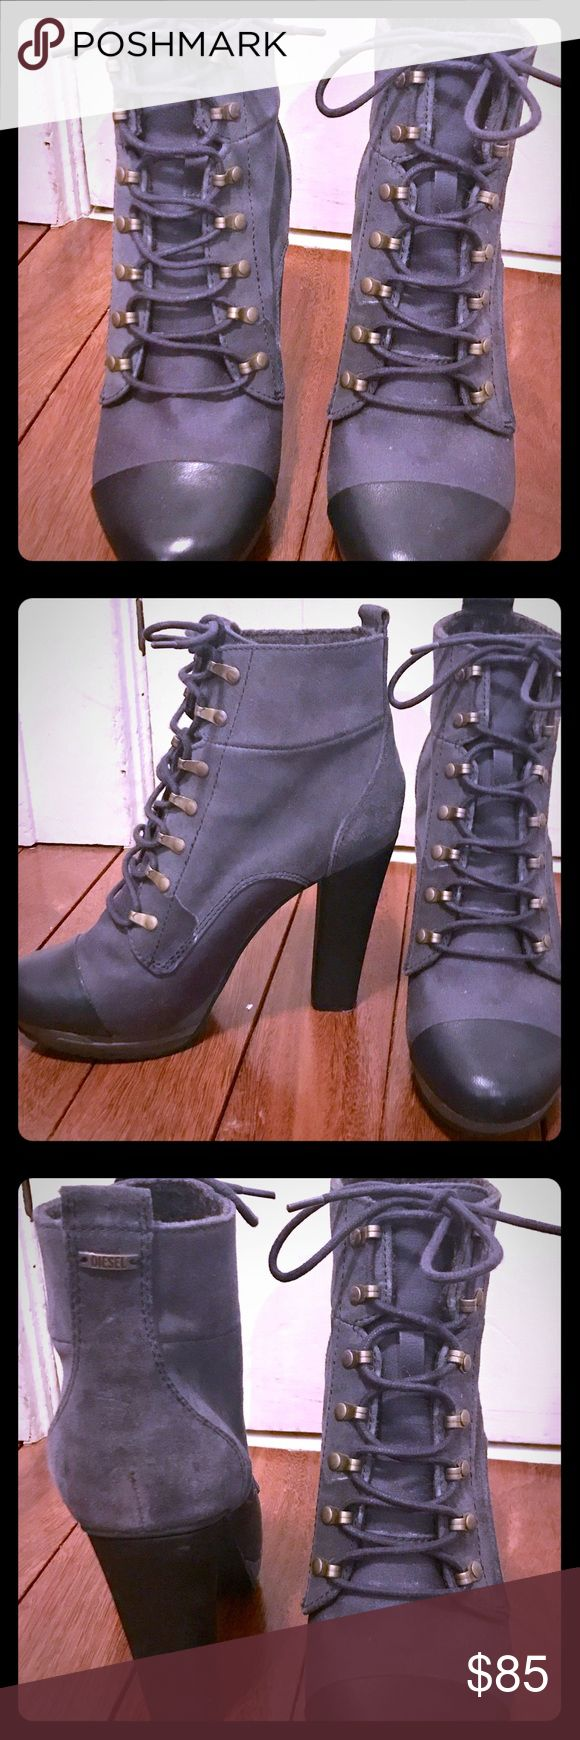 Blue Diesel heeled booties Blue lace up heeled booties Diesel Shoes Ankle Boots & Booties